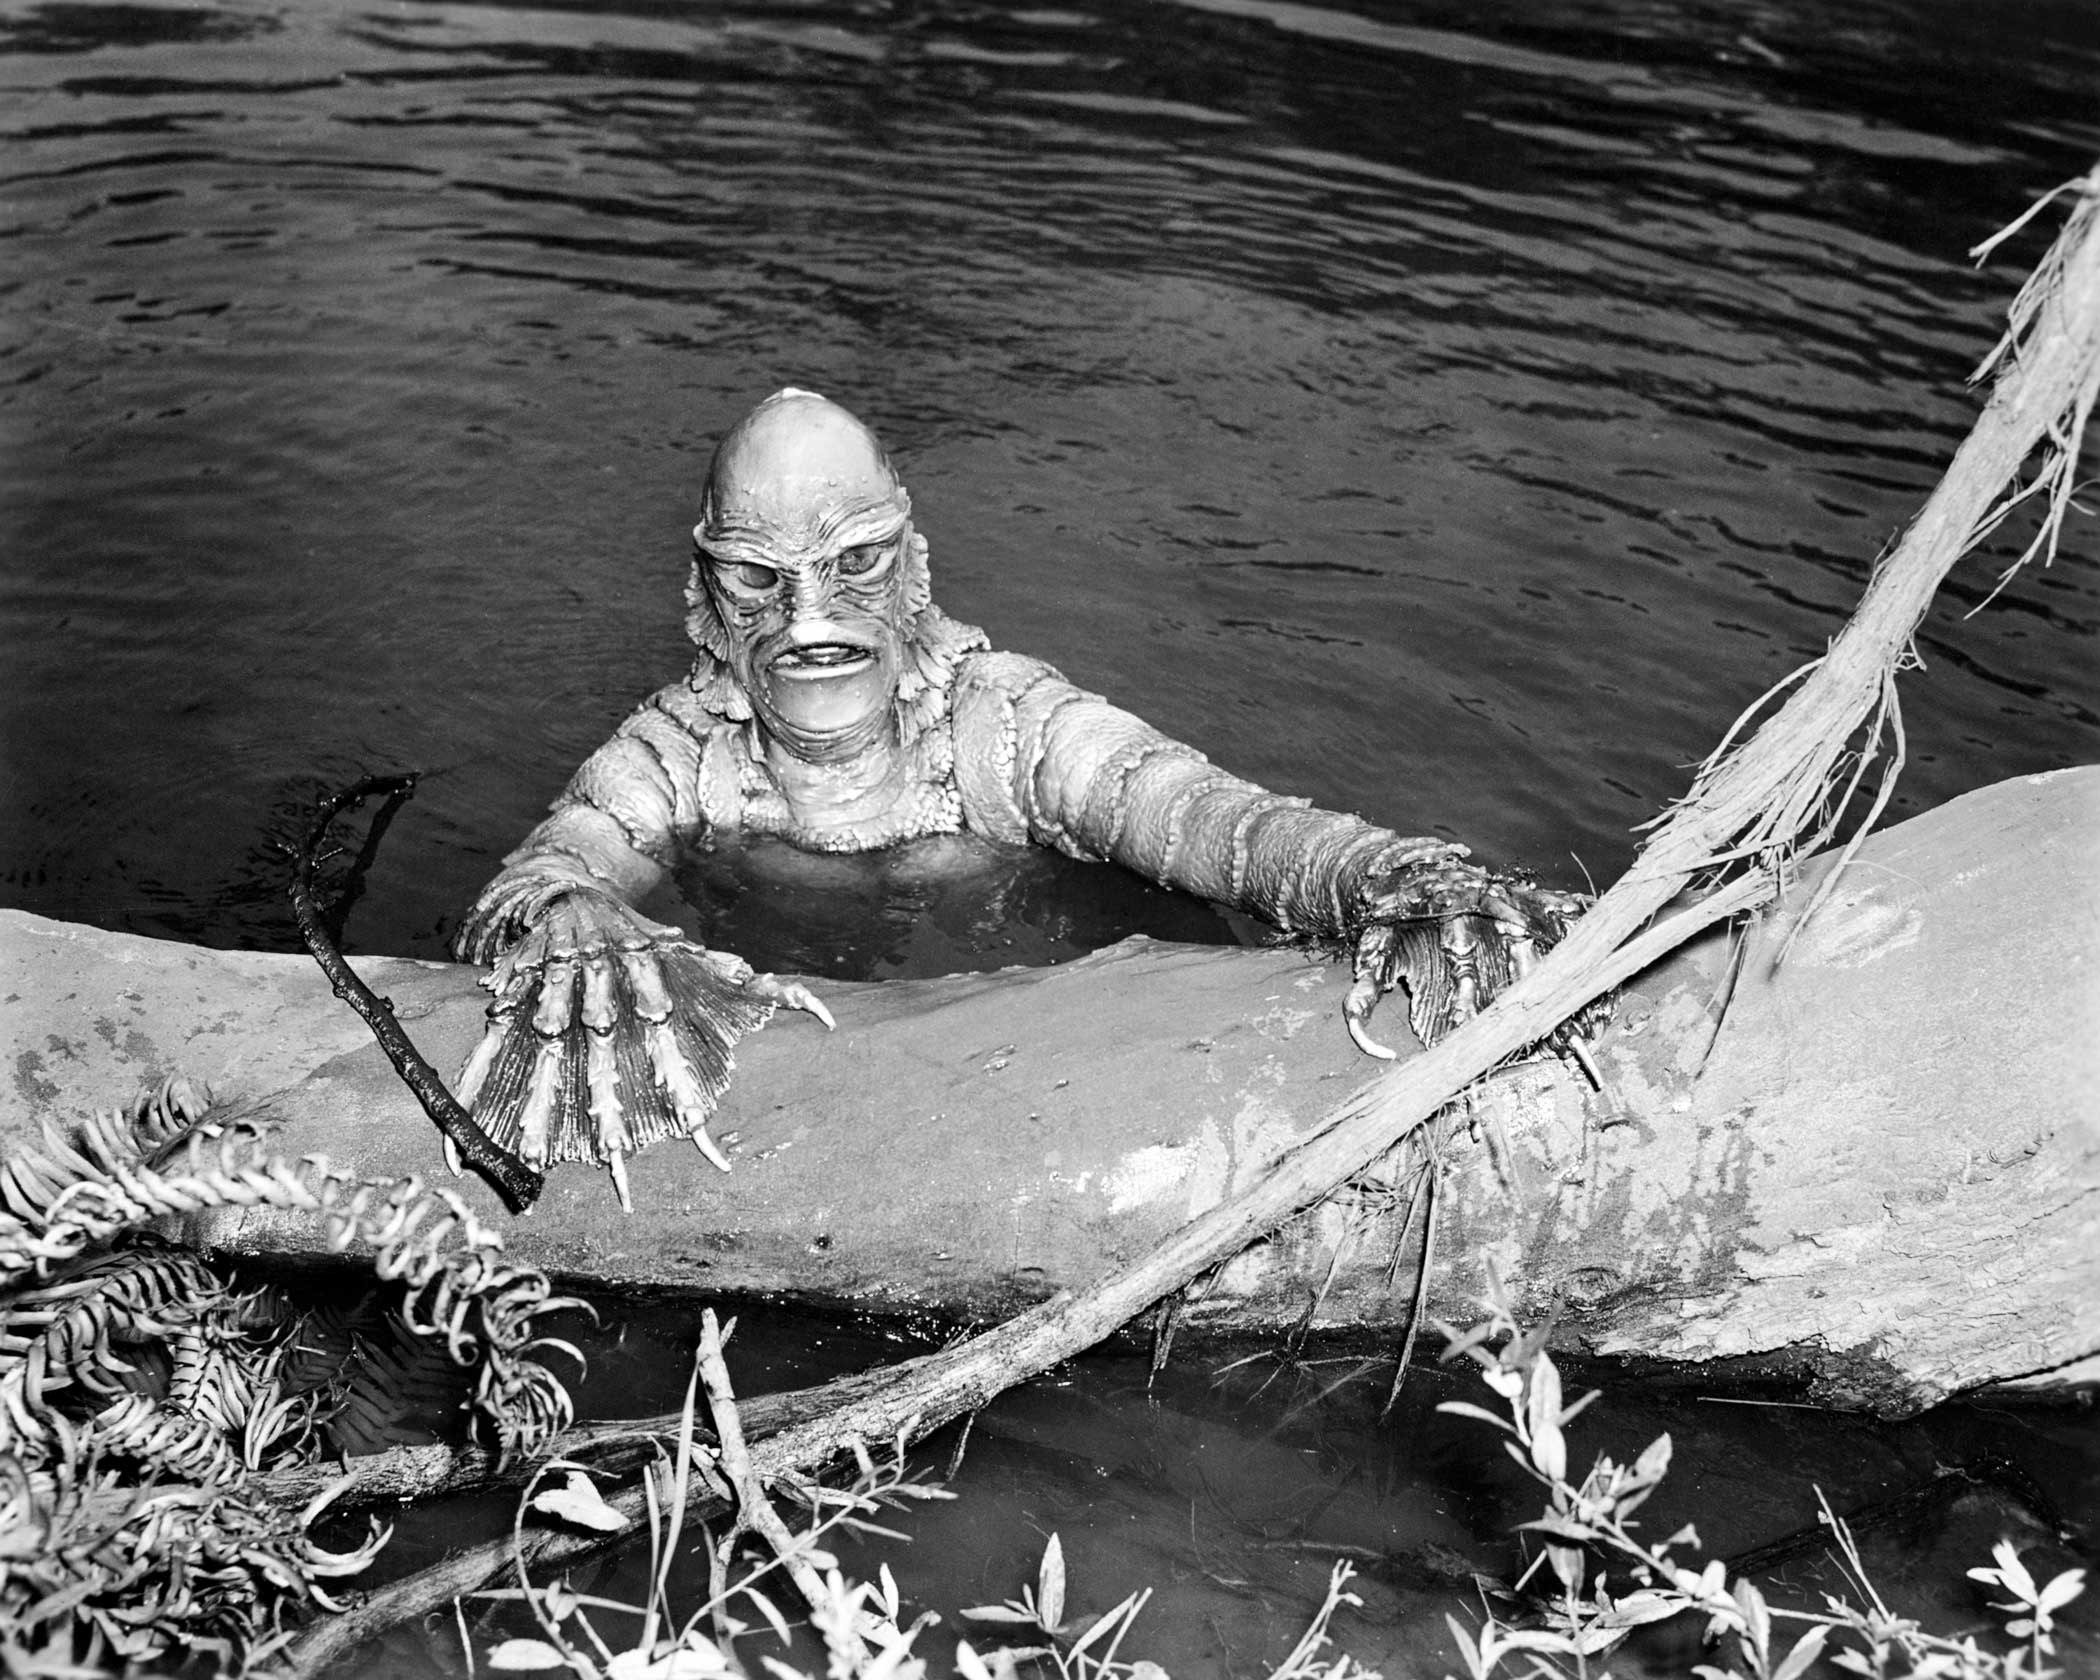 Gill-man from Creature from the Black Lagoon, 1954.